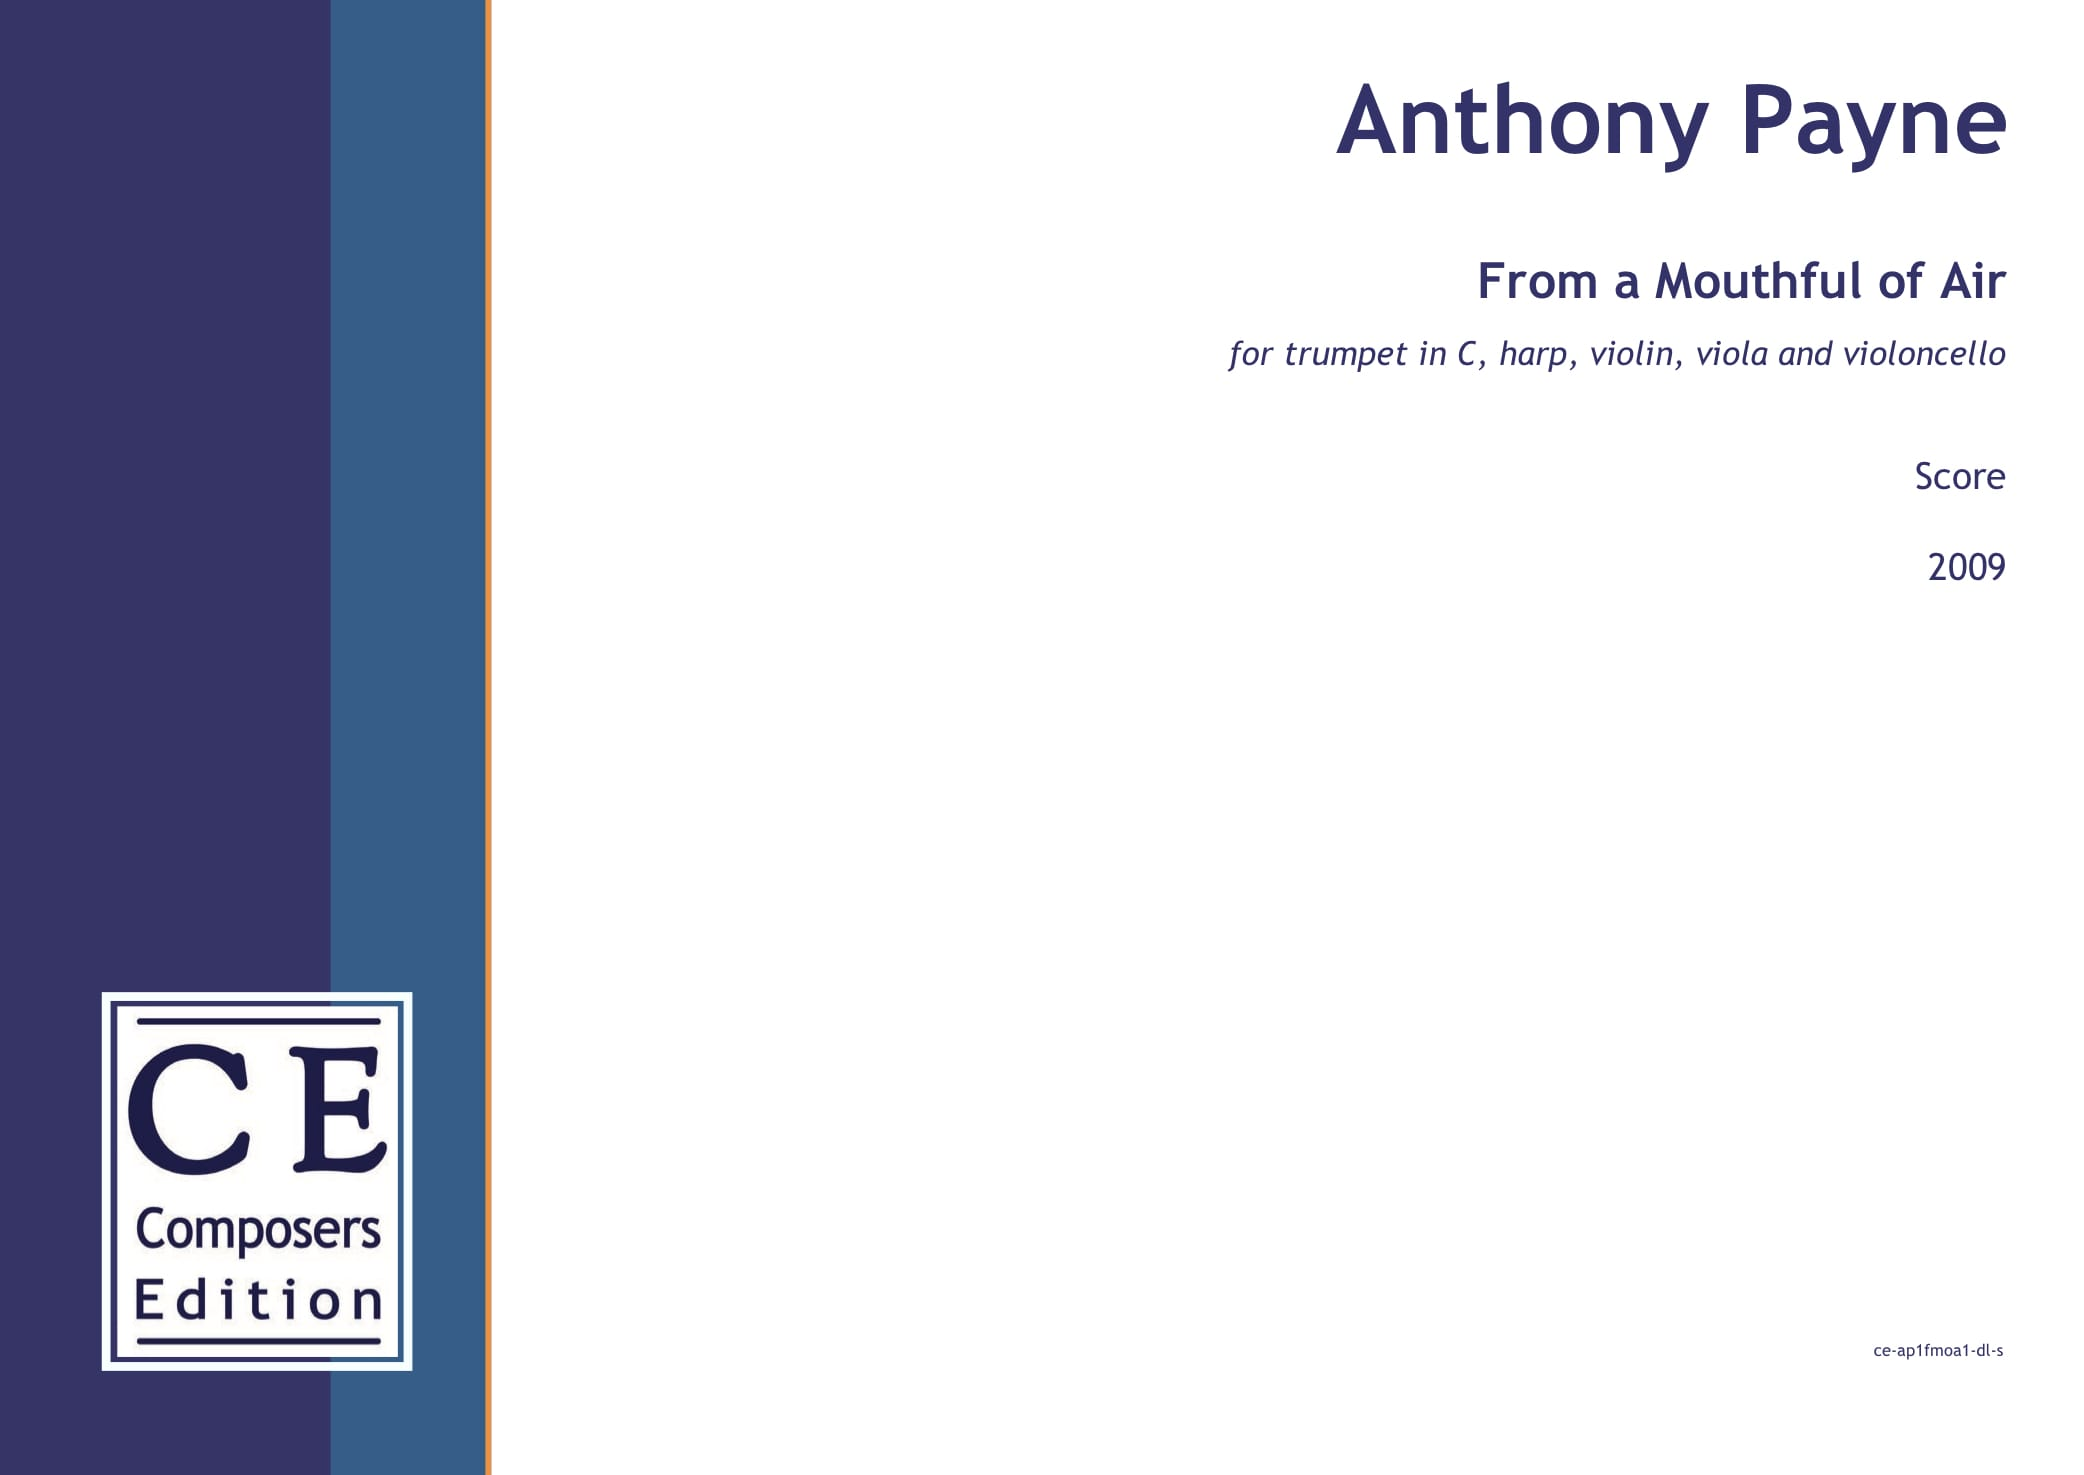 Anthony Payne: From a Mouthful of Air for trumpet in C, harp, violin, viola and violoncello